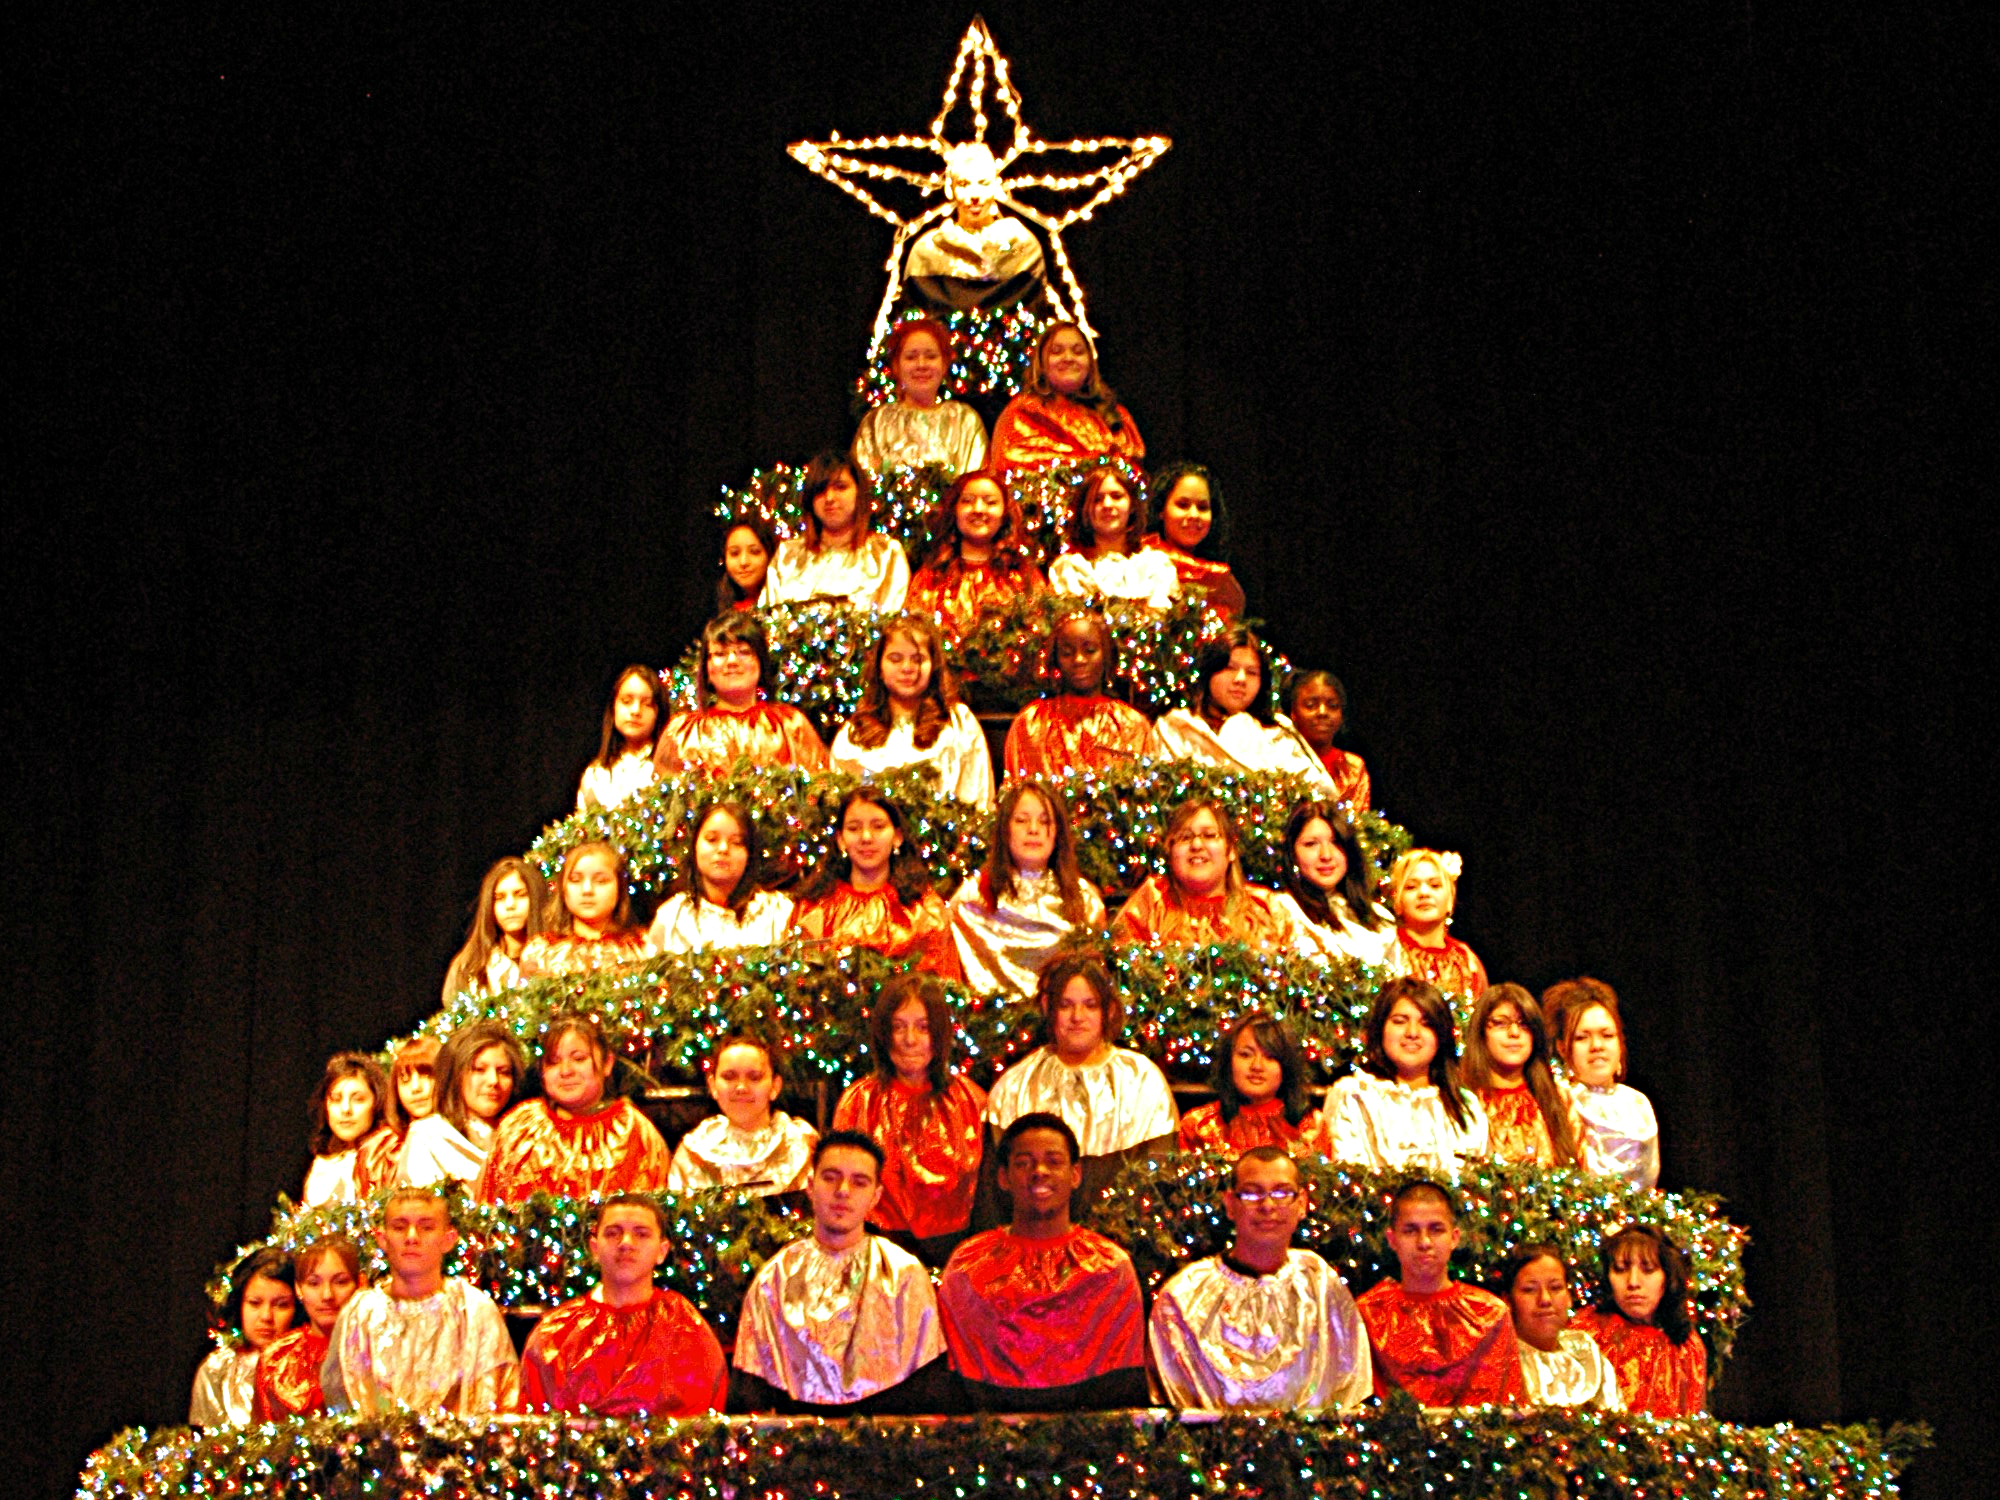 Photo: Singing Christmas Tree